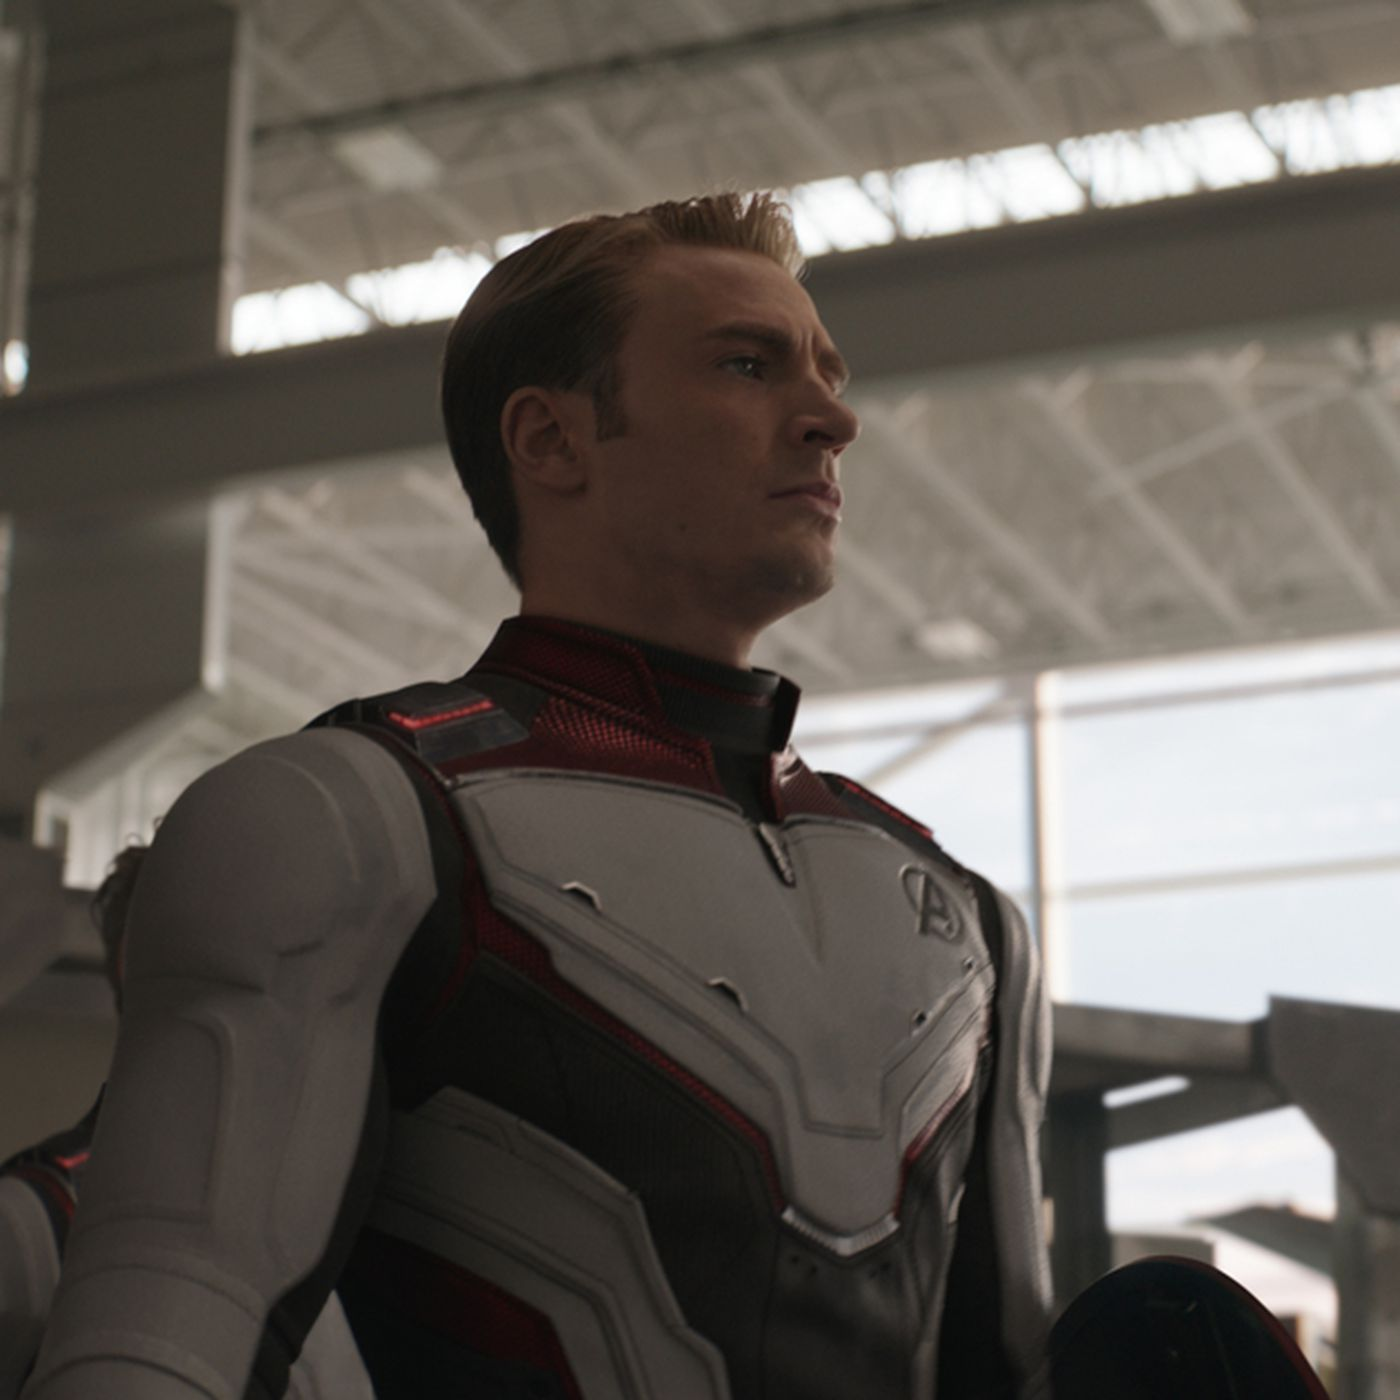 It Turns Out Those Snazzy New Suits In Avengers Endgame